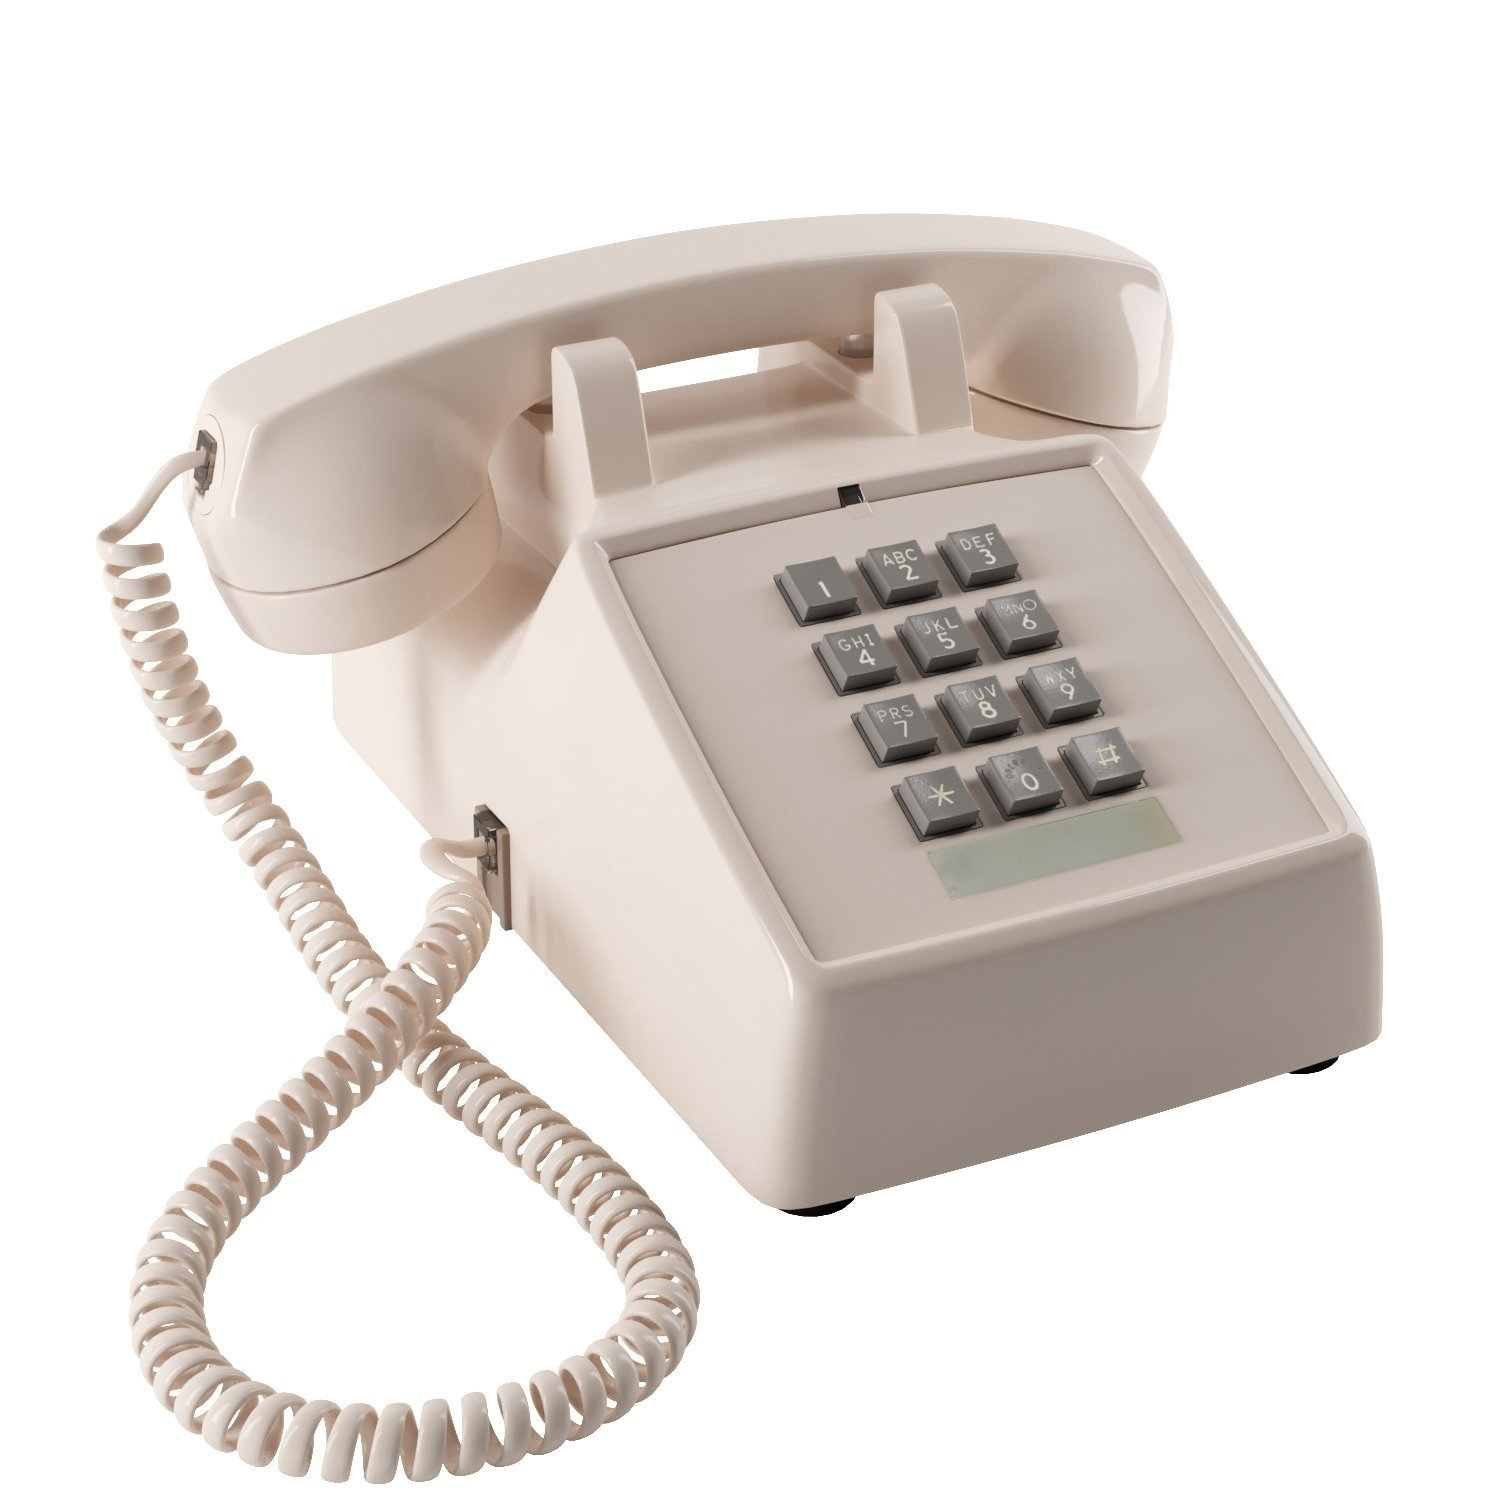 Details about Home Intuition Amplified Single Line Corded Desk Telephone  with Extra Loud